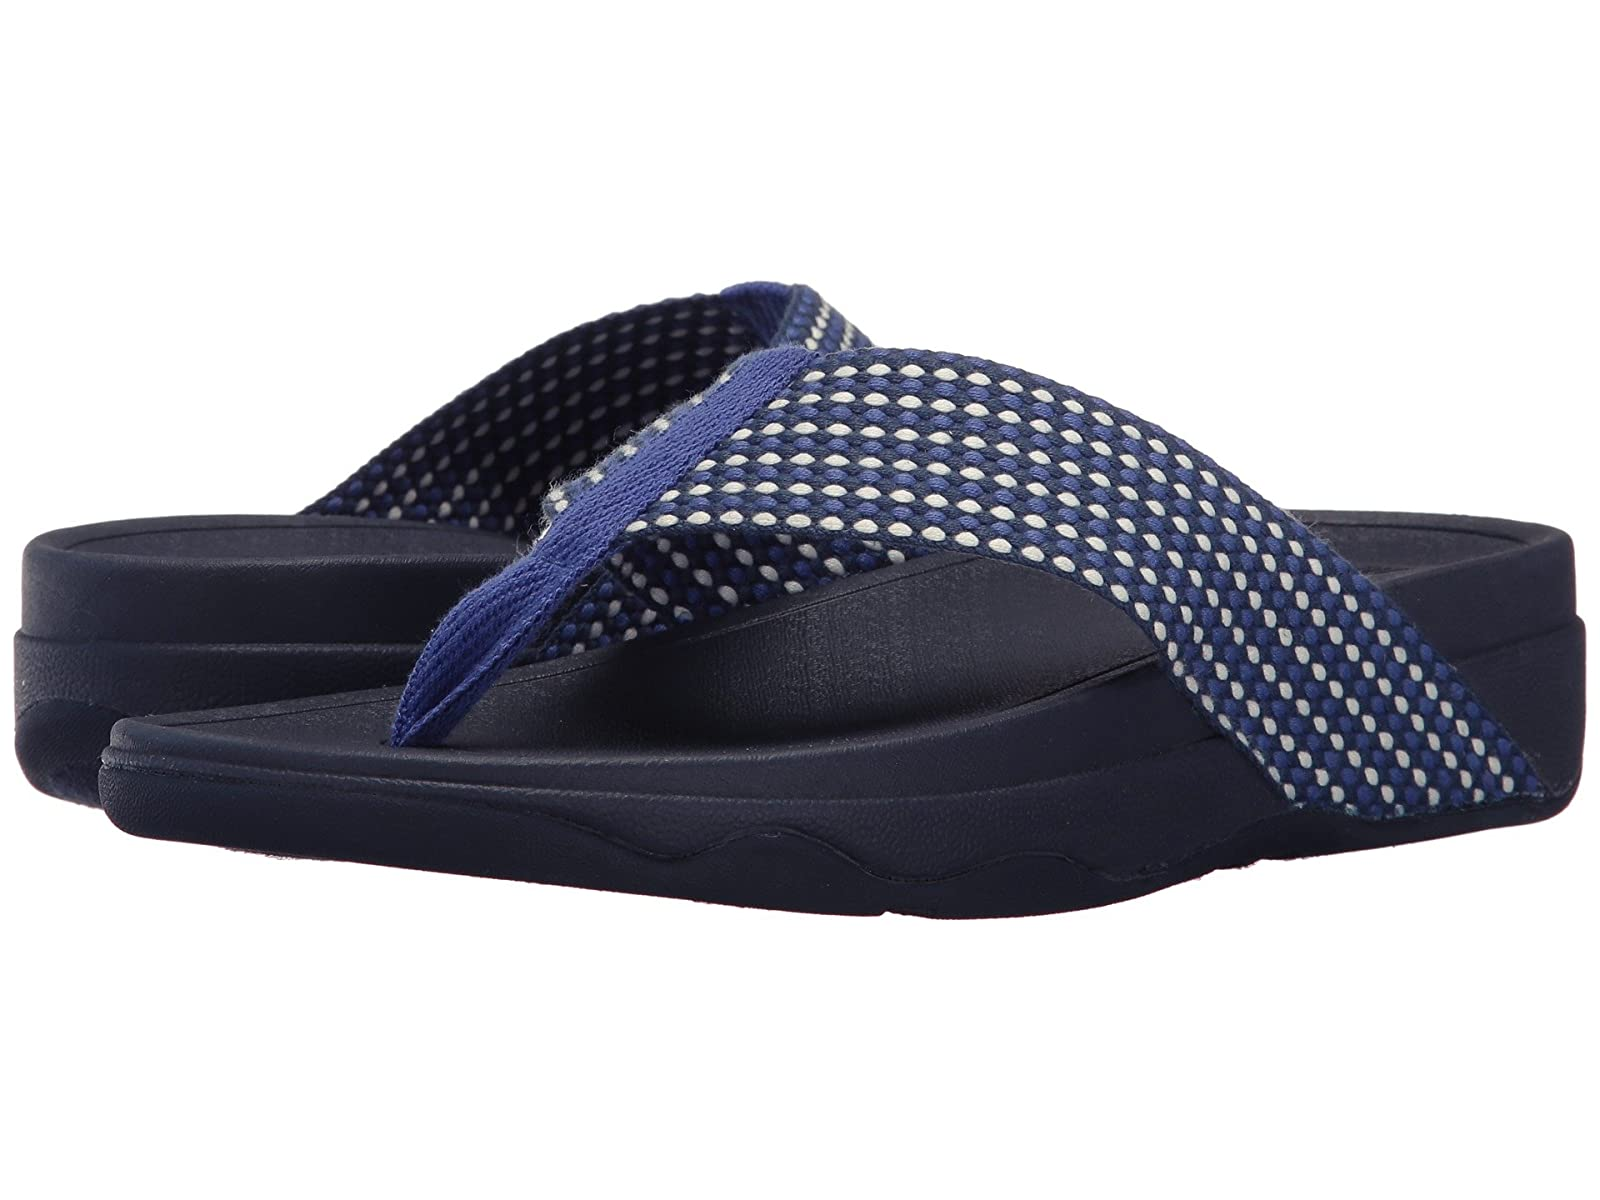 FitFlop SurfaAtmospheric grades have affordable shoes